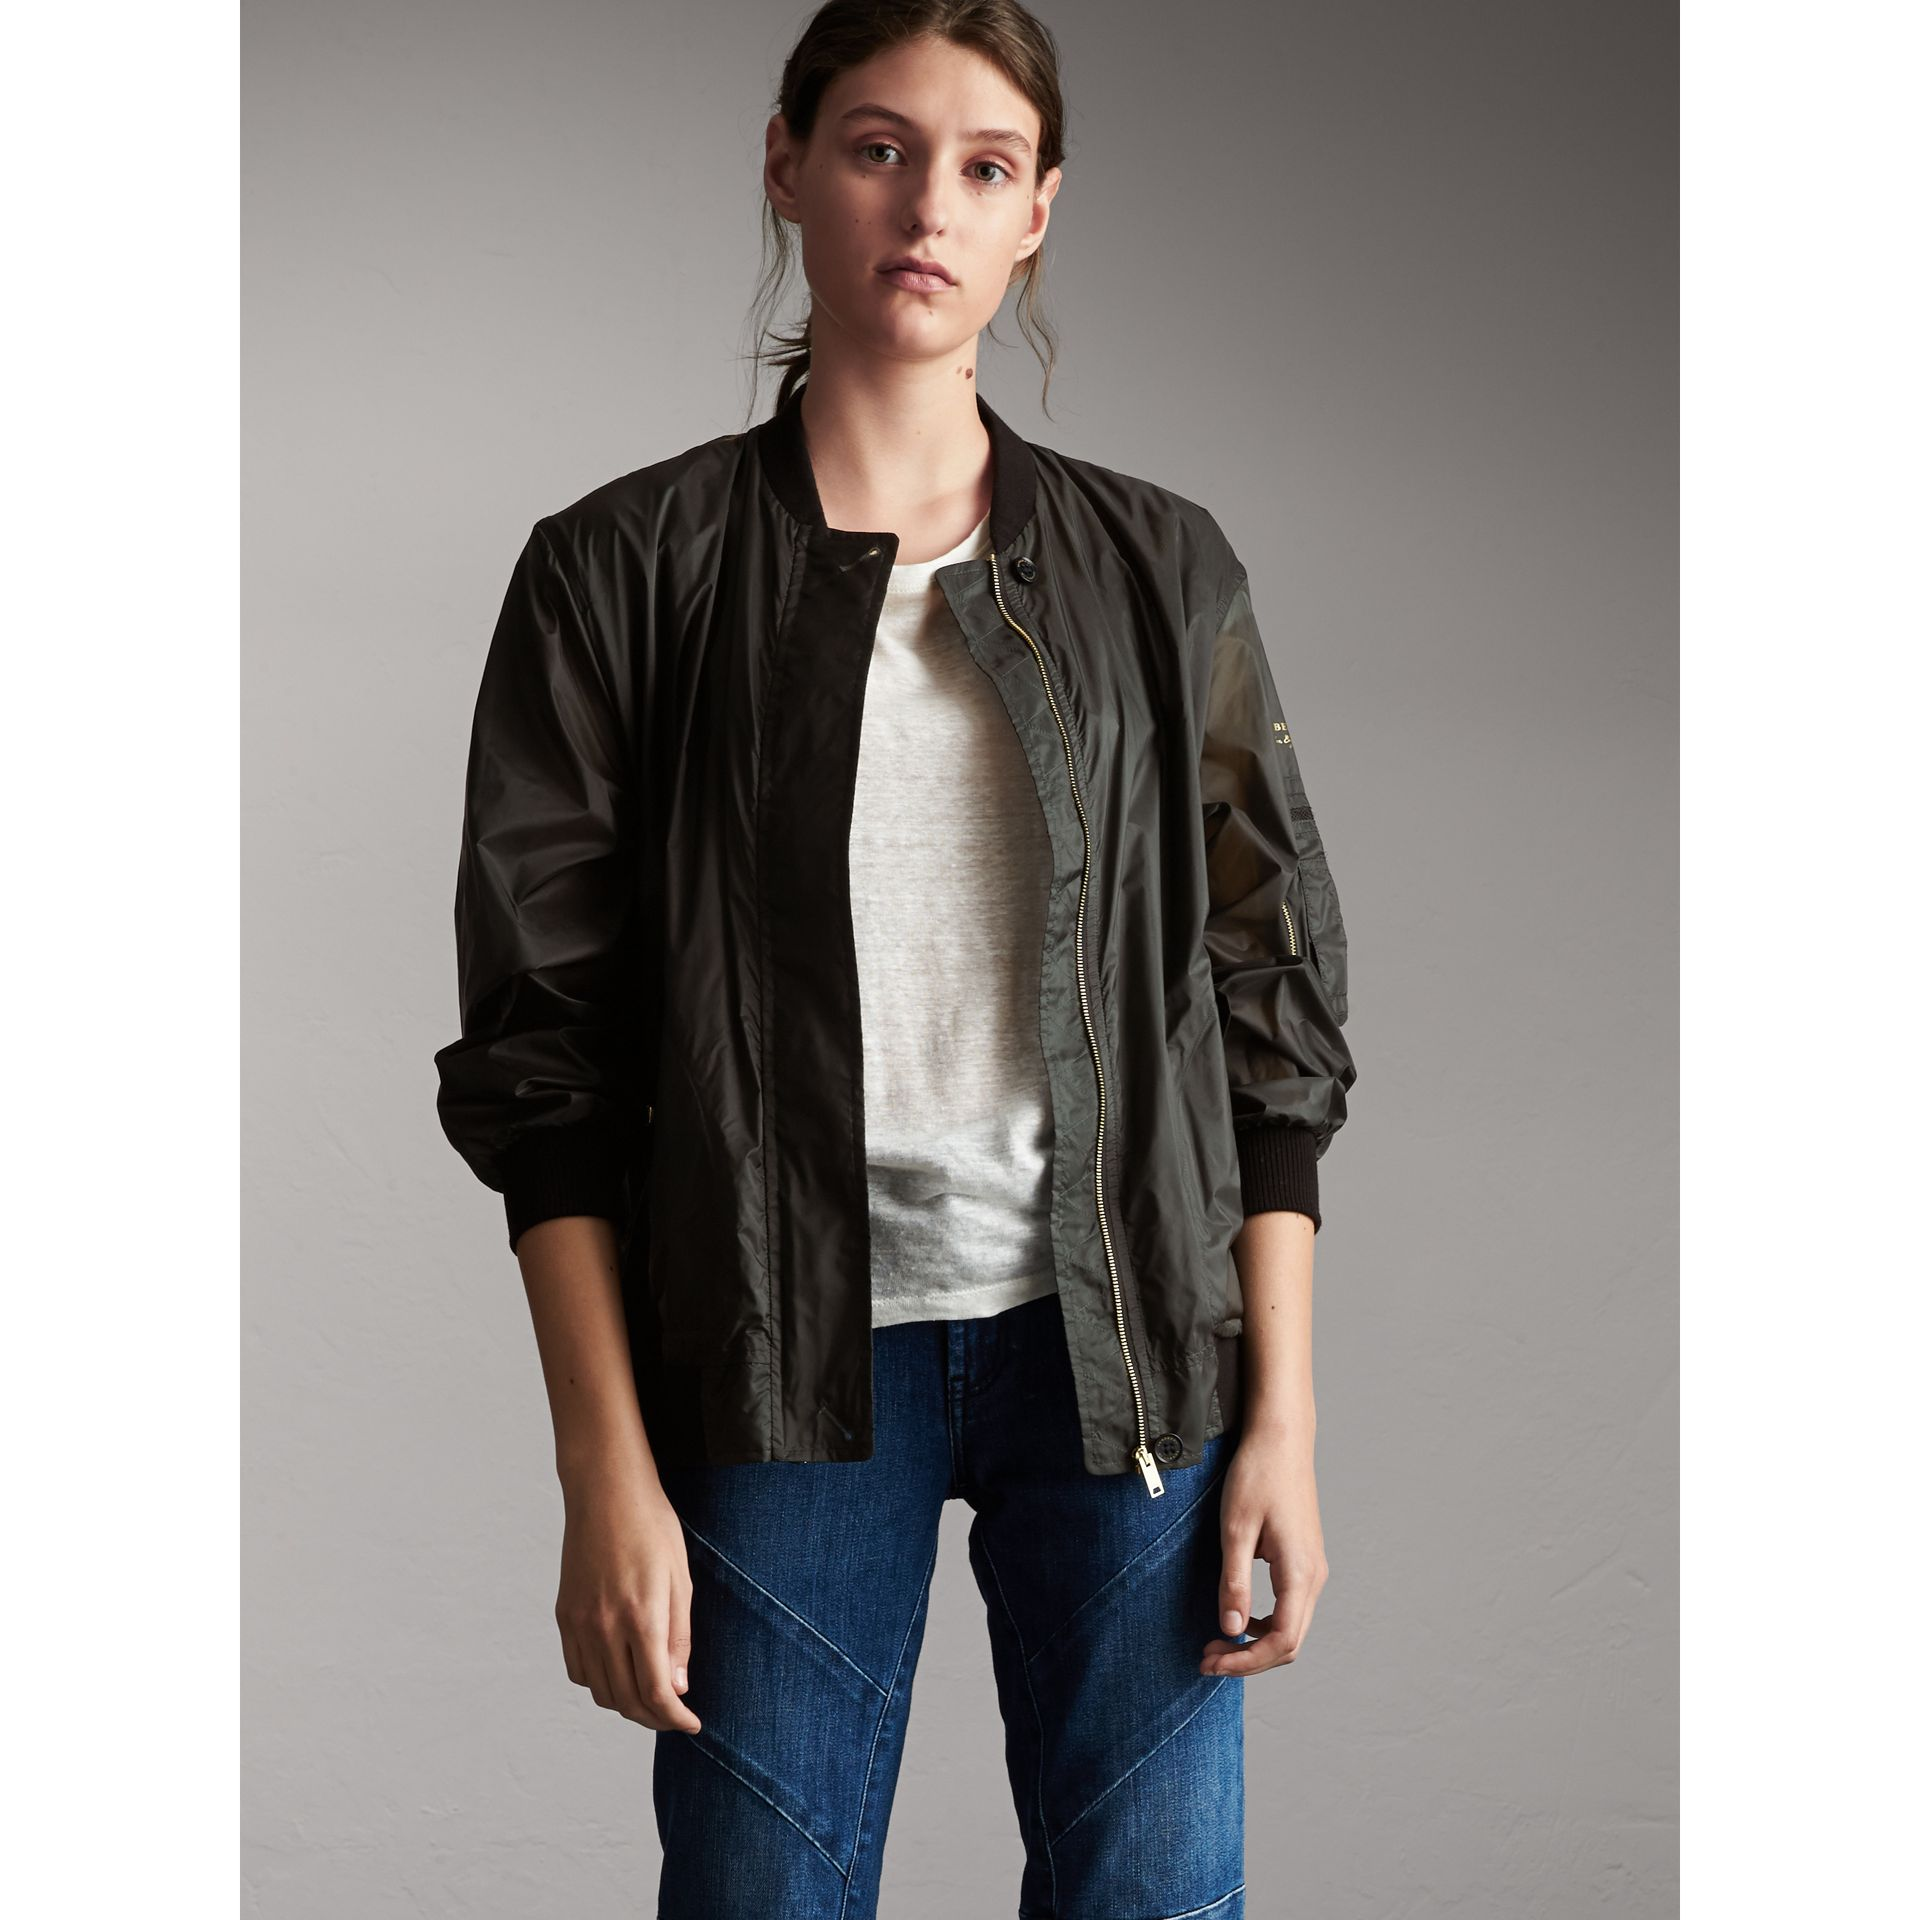 Lightweight Bomber Jacket in Vintage Green - Women | Burberry - gallery image 5